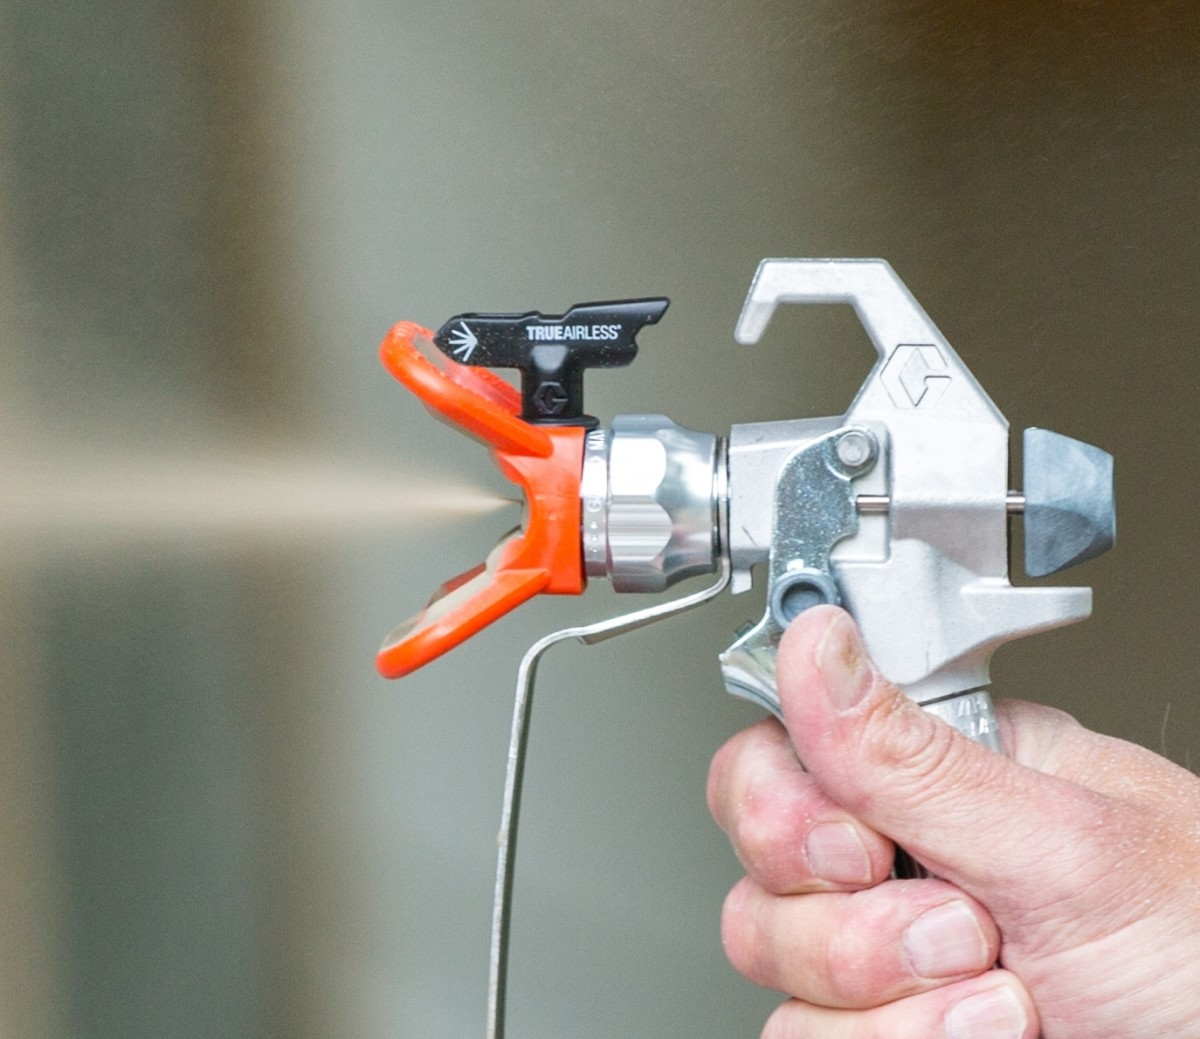 Tips for Cleaning Graco Airless Paint Sprayer Parts | Dengarden